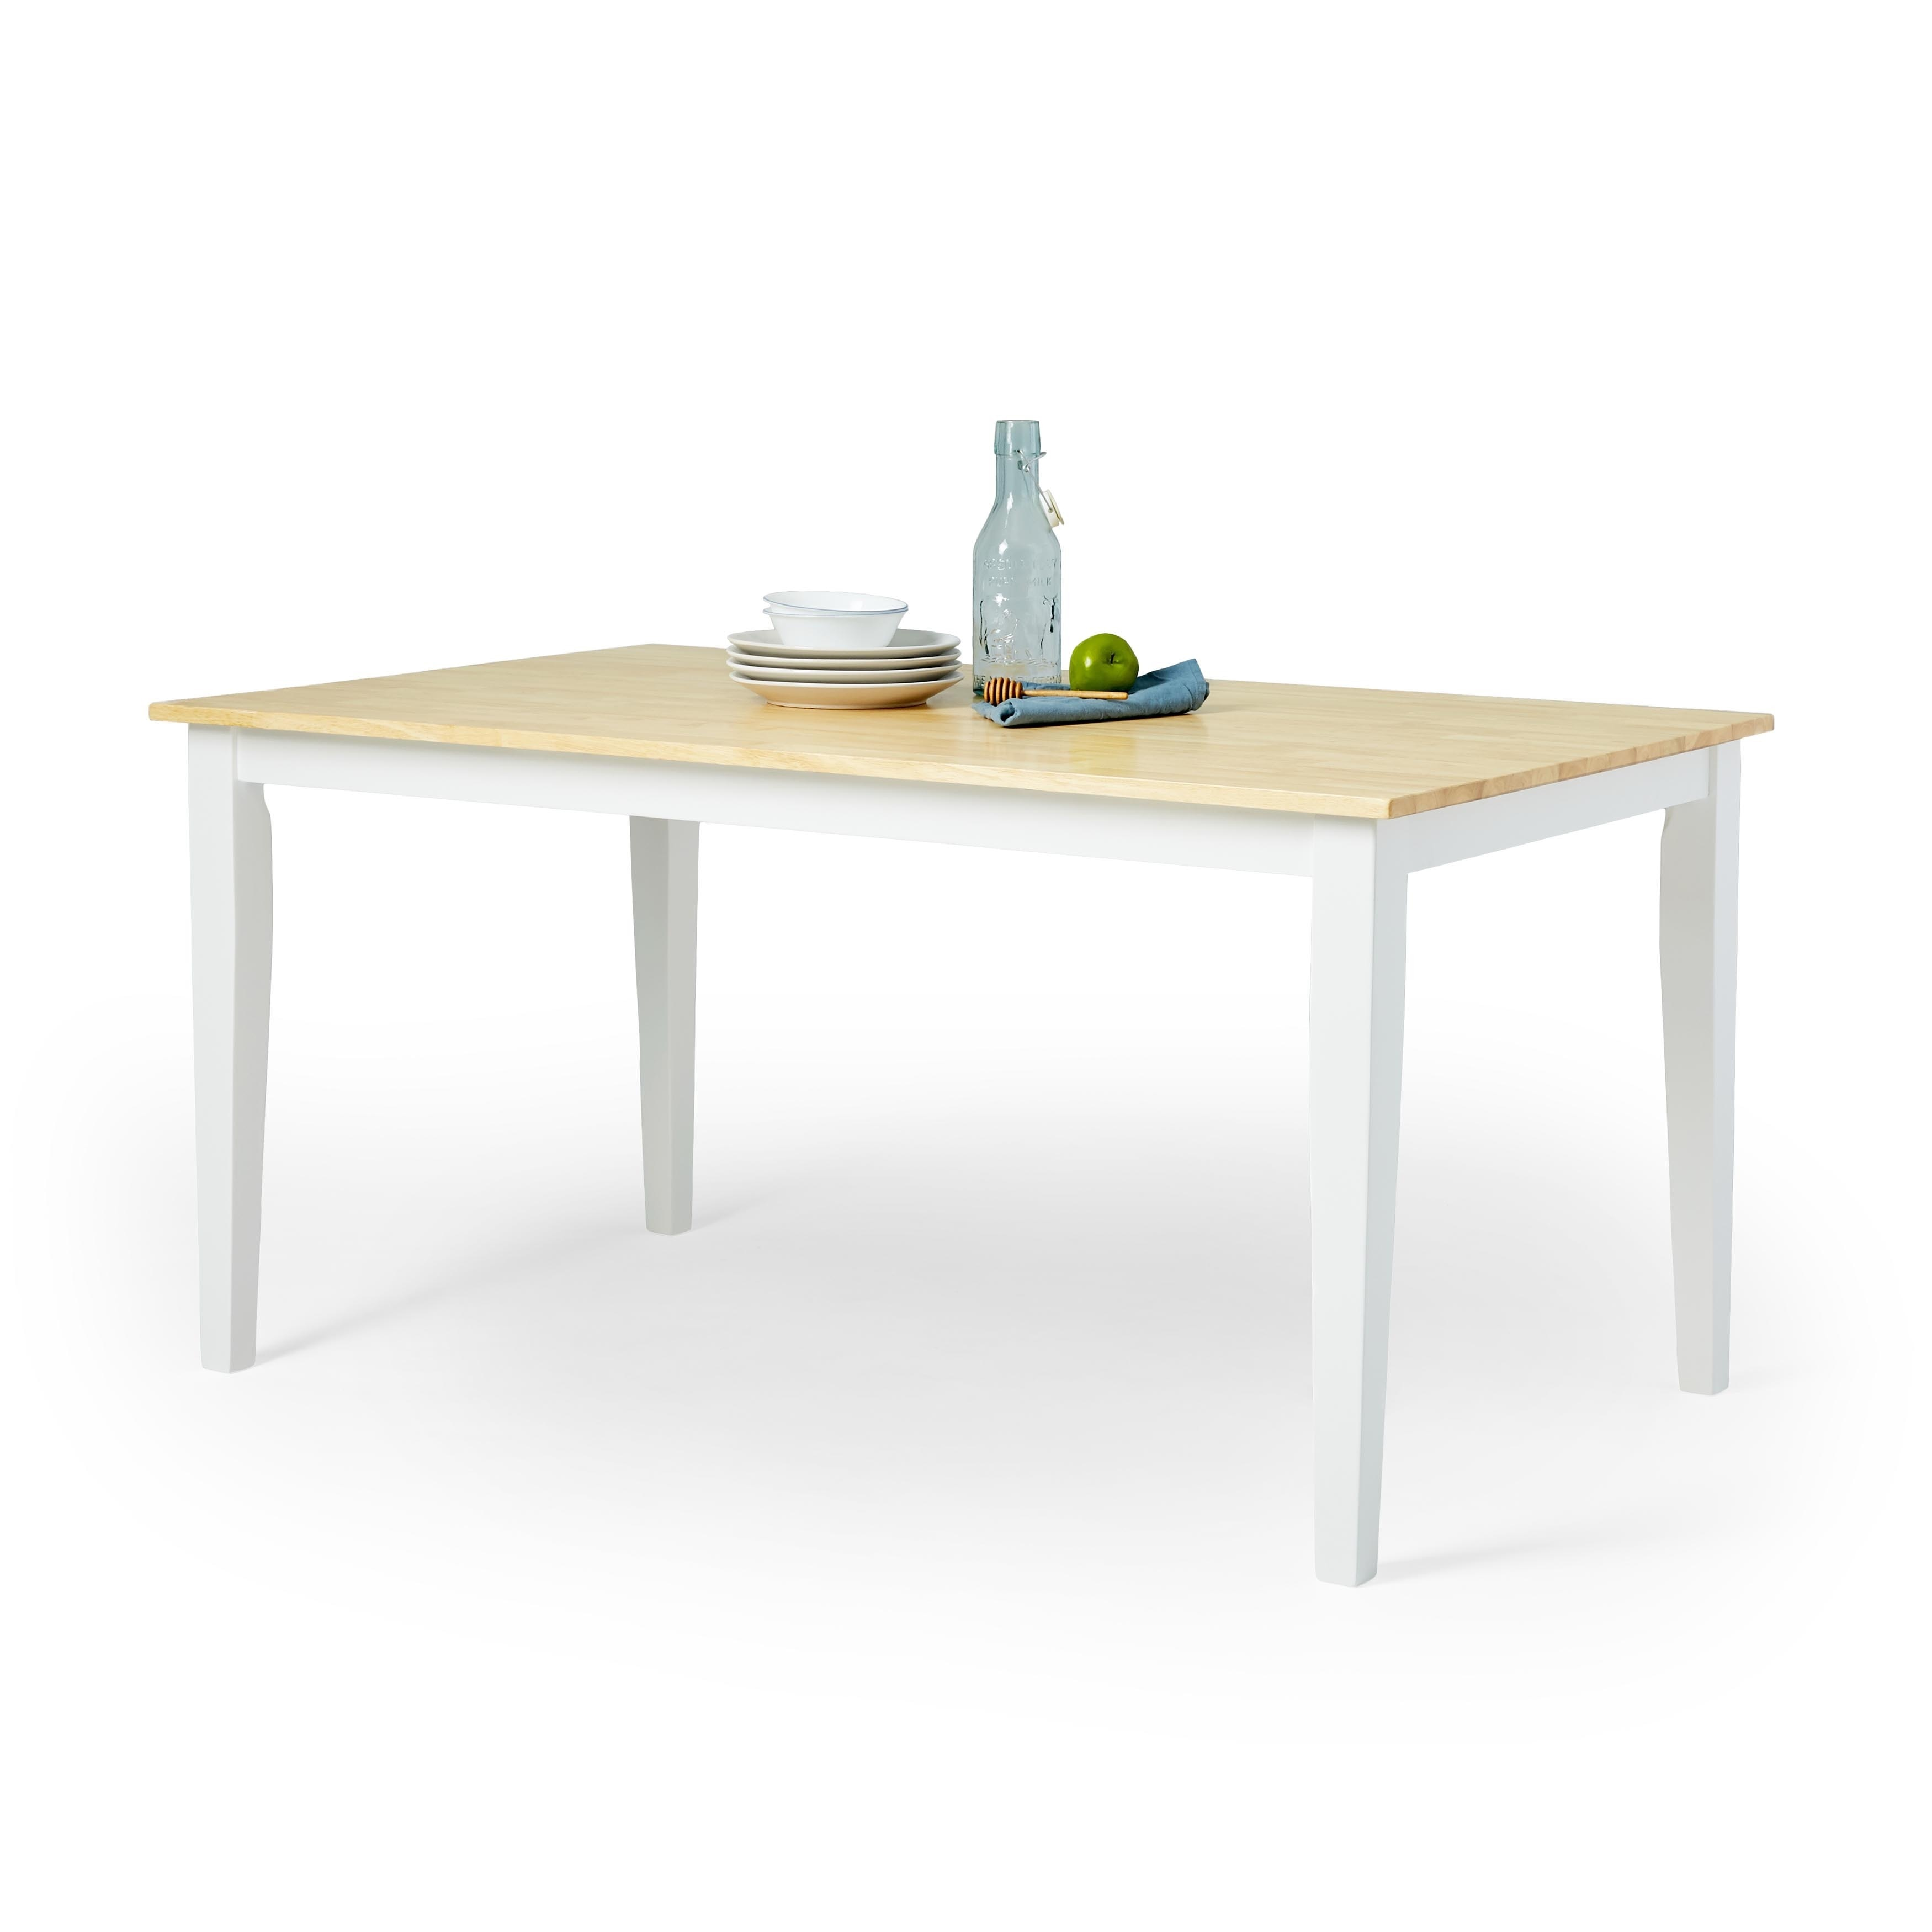 Simple Living Shaker Dining Table in White and Natural